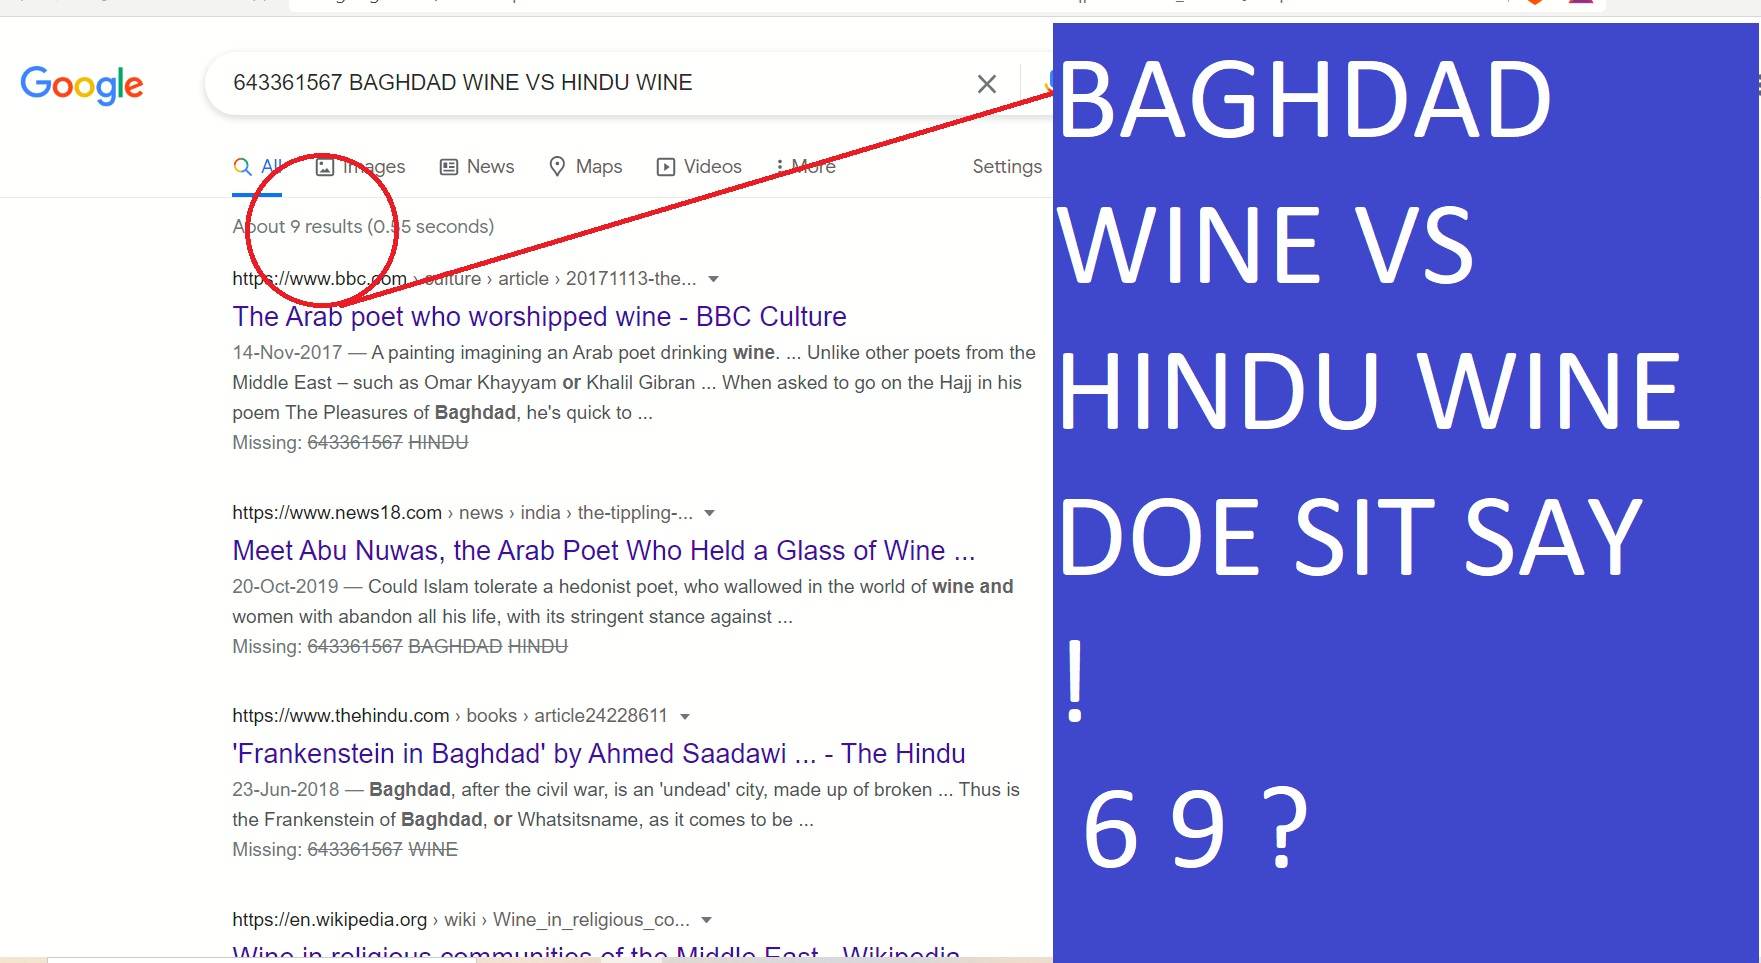 BADH DAD WINE VS HINDU WINE EMANS 200 YEAR D VS 5000 YEARD IOLD BATETRY - IN WHICH VAFG MADARCHOD